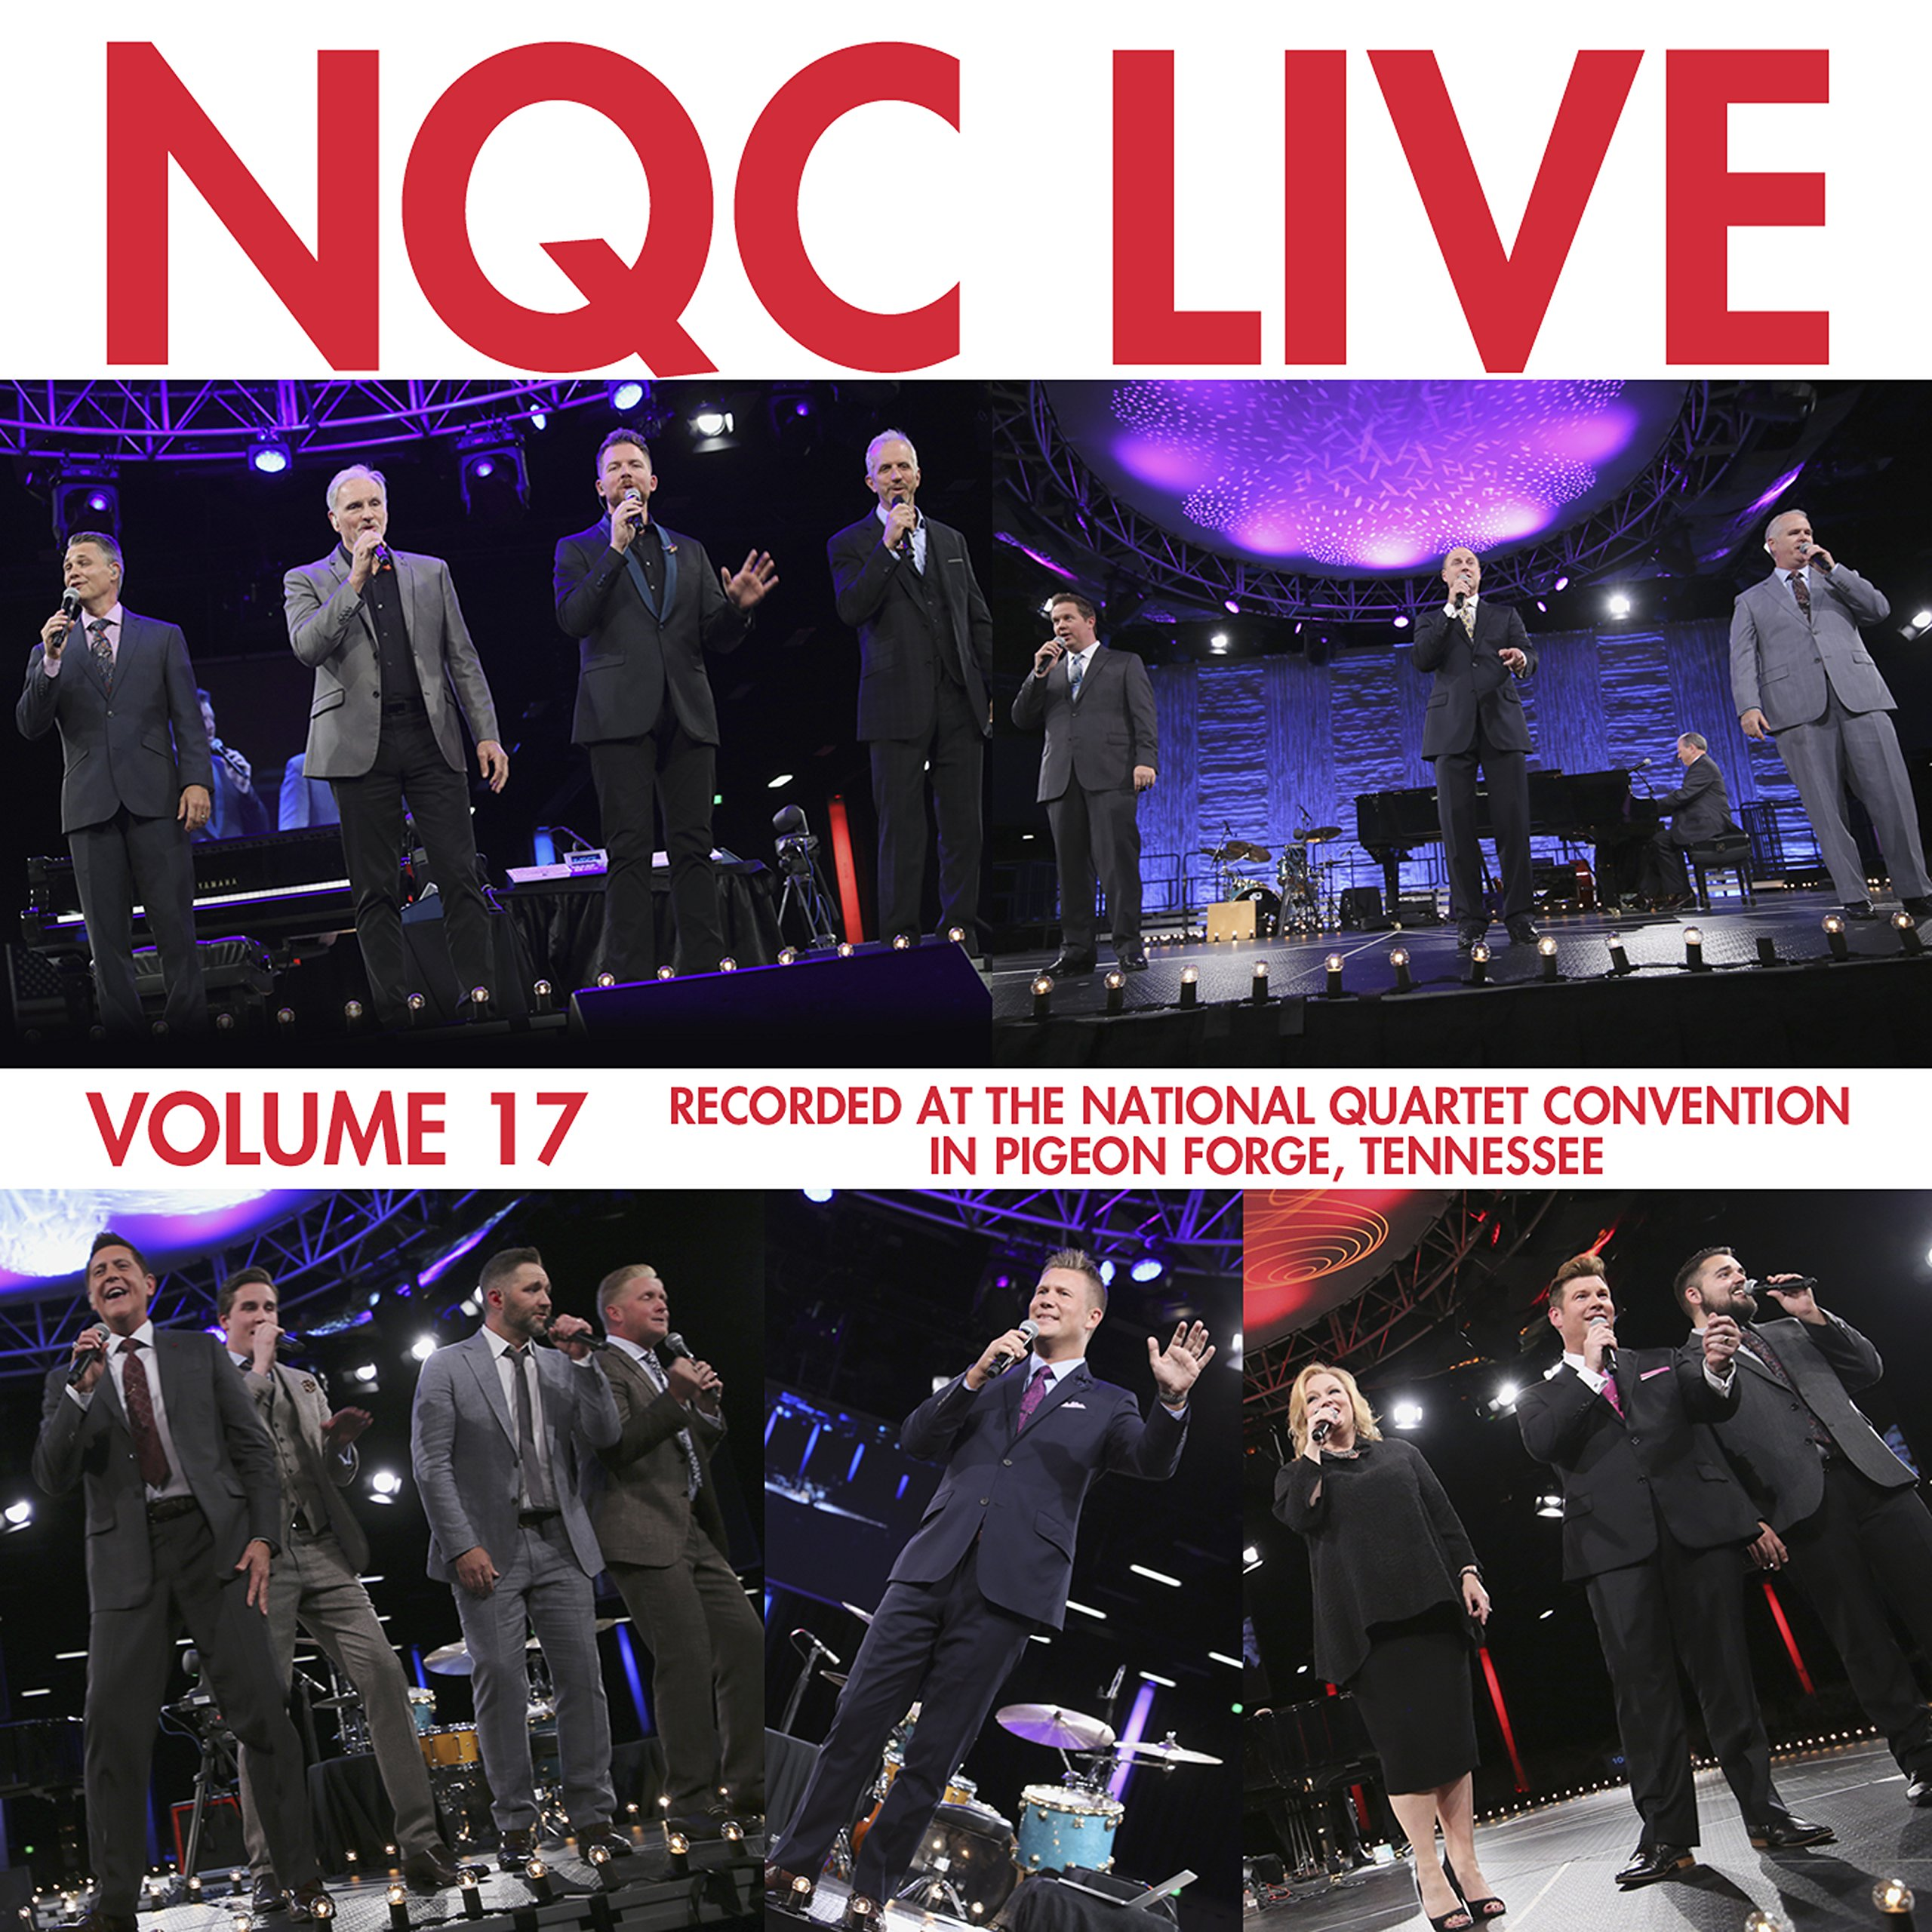 NQC Live Volume 17 by Crossroads Records